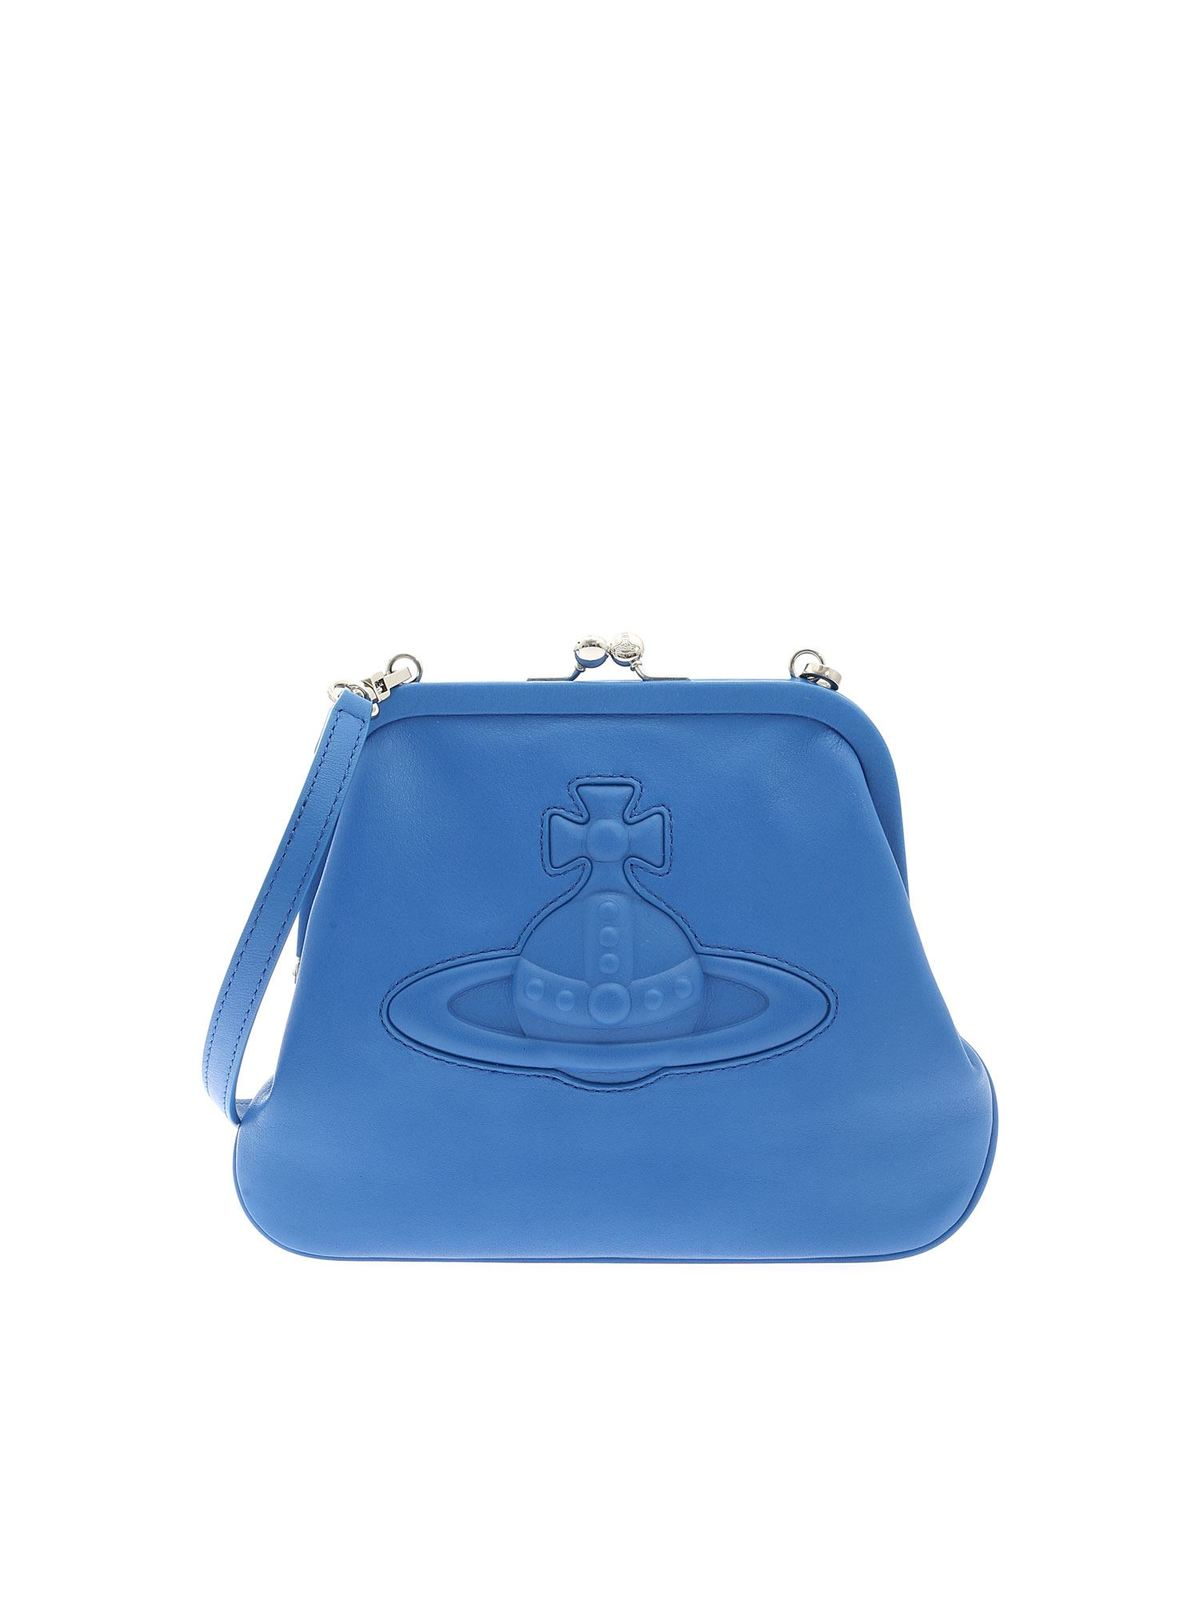 Vivienne Westwood CHELSEA VIVIENNES CLUTCH BAG IN BLUE